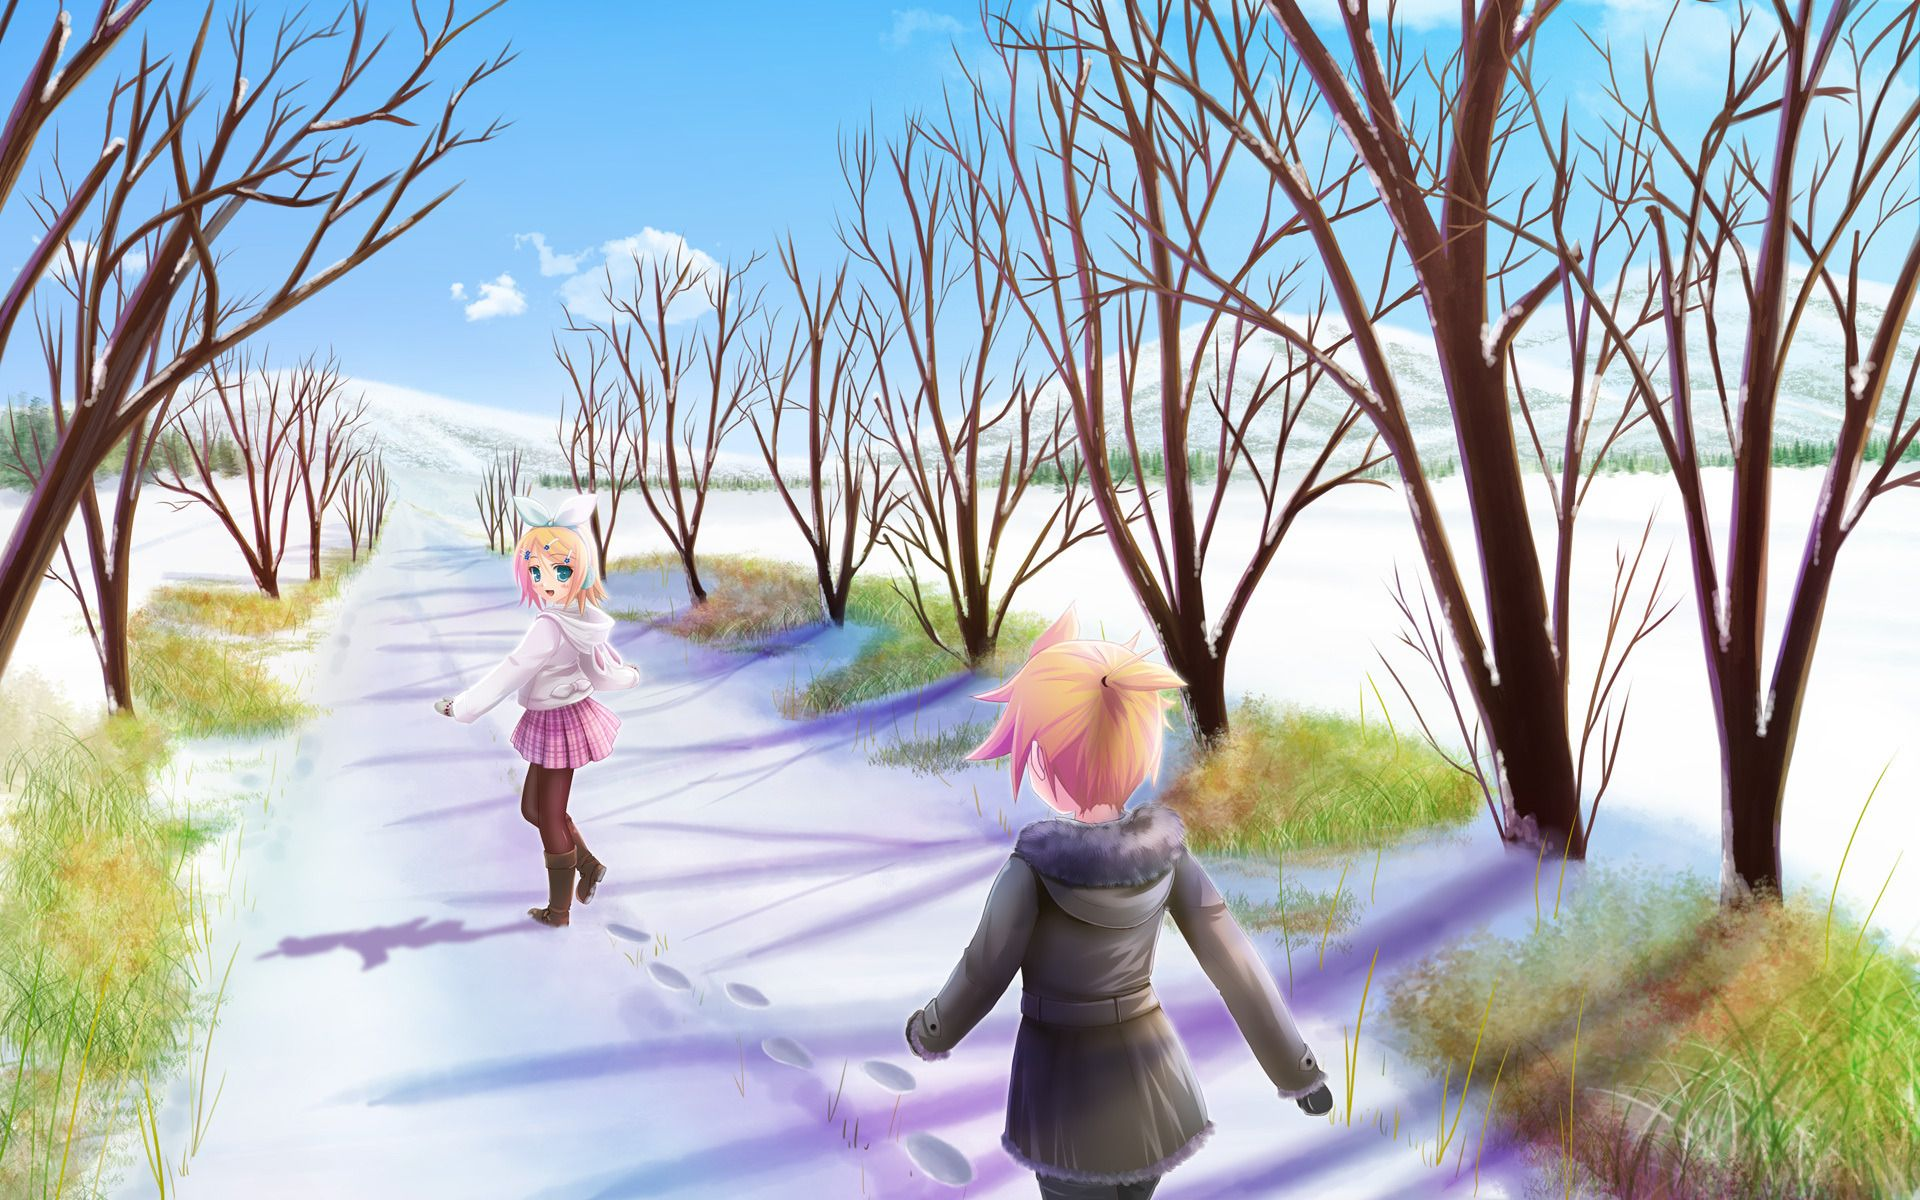 Anime-Winter-Rin-Flax-Vokaloid-Snow-Alley-Mood-jpg-×-wallpaper-wp5803513